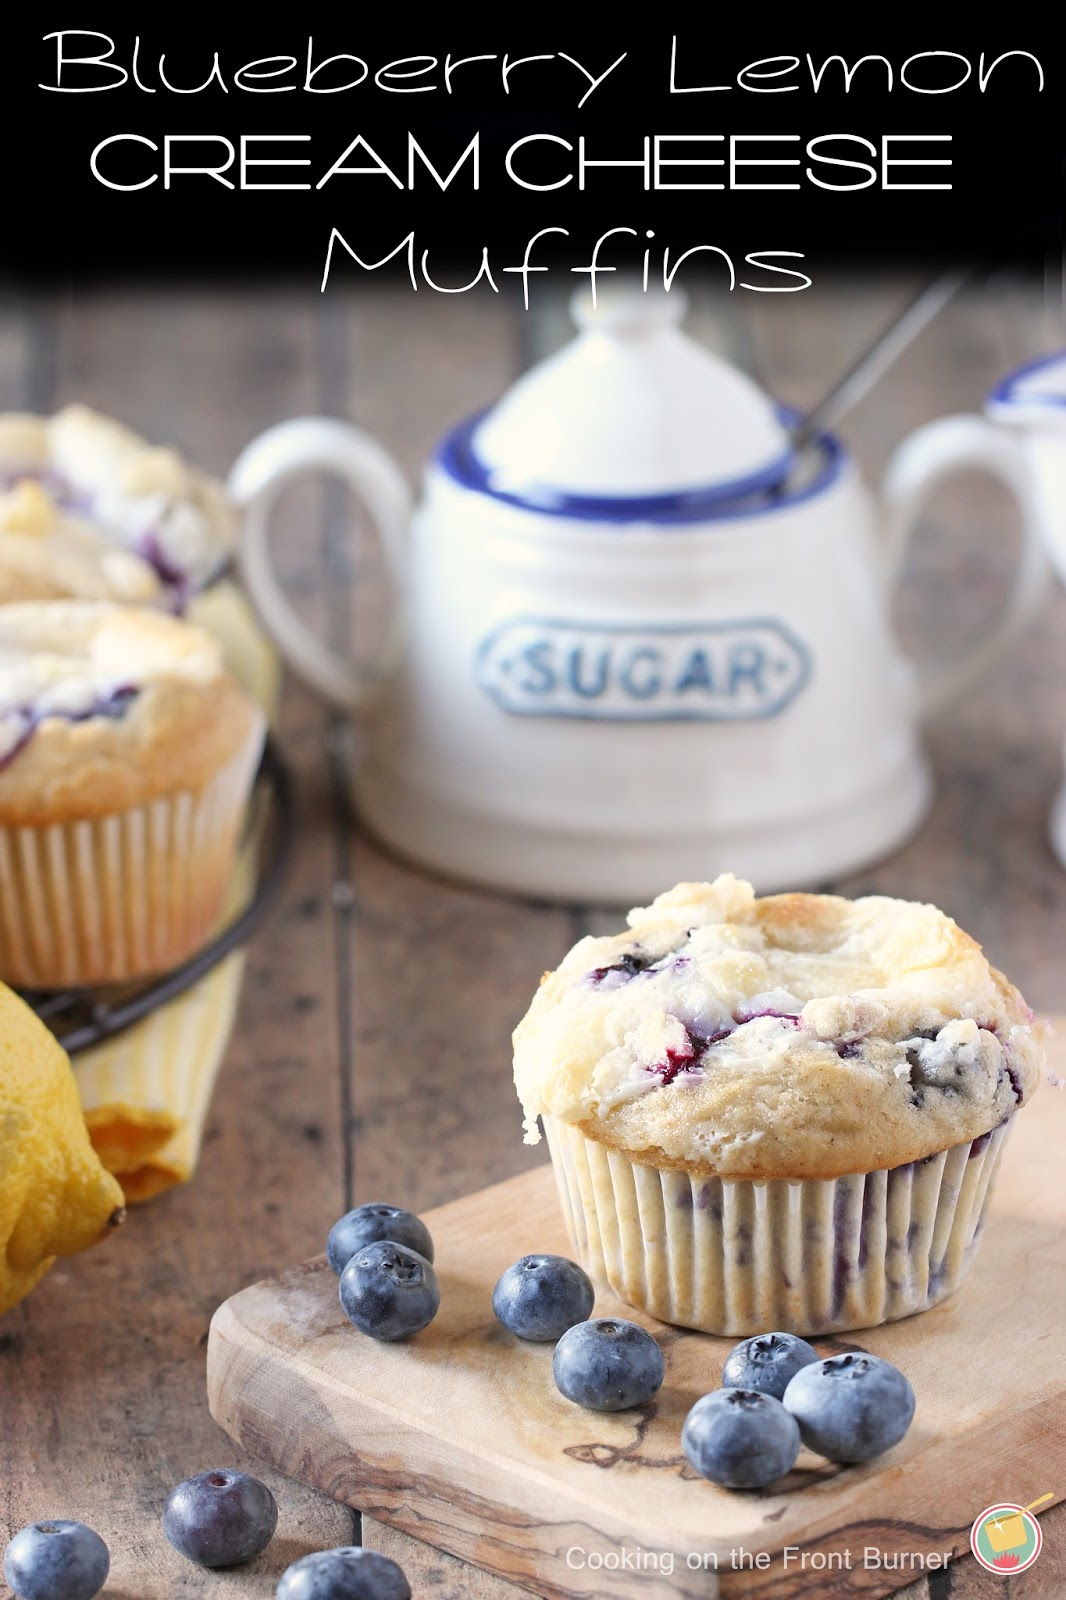 Blueberry Lemon Cream Cheese Muffins | Cooking on the Front Burner